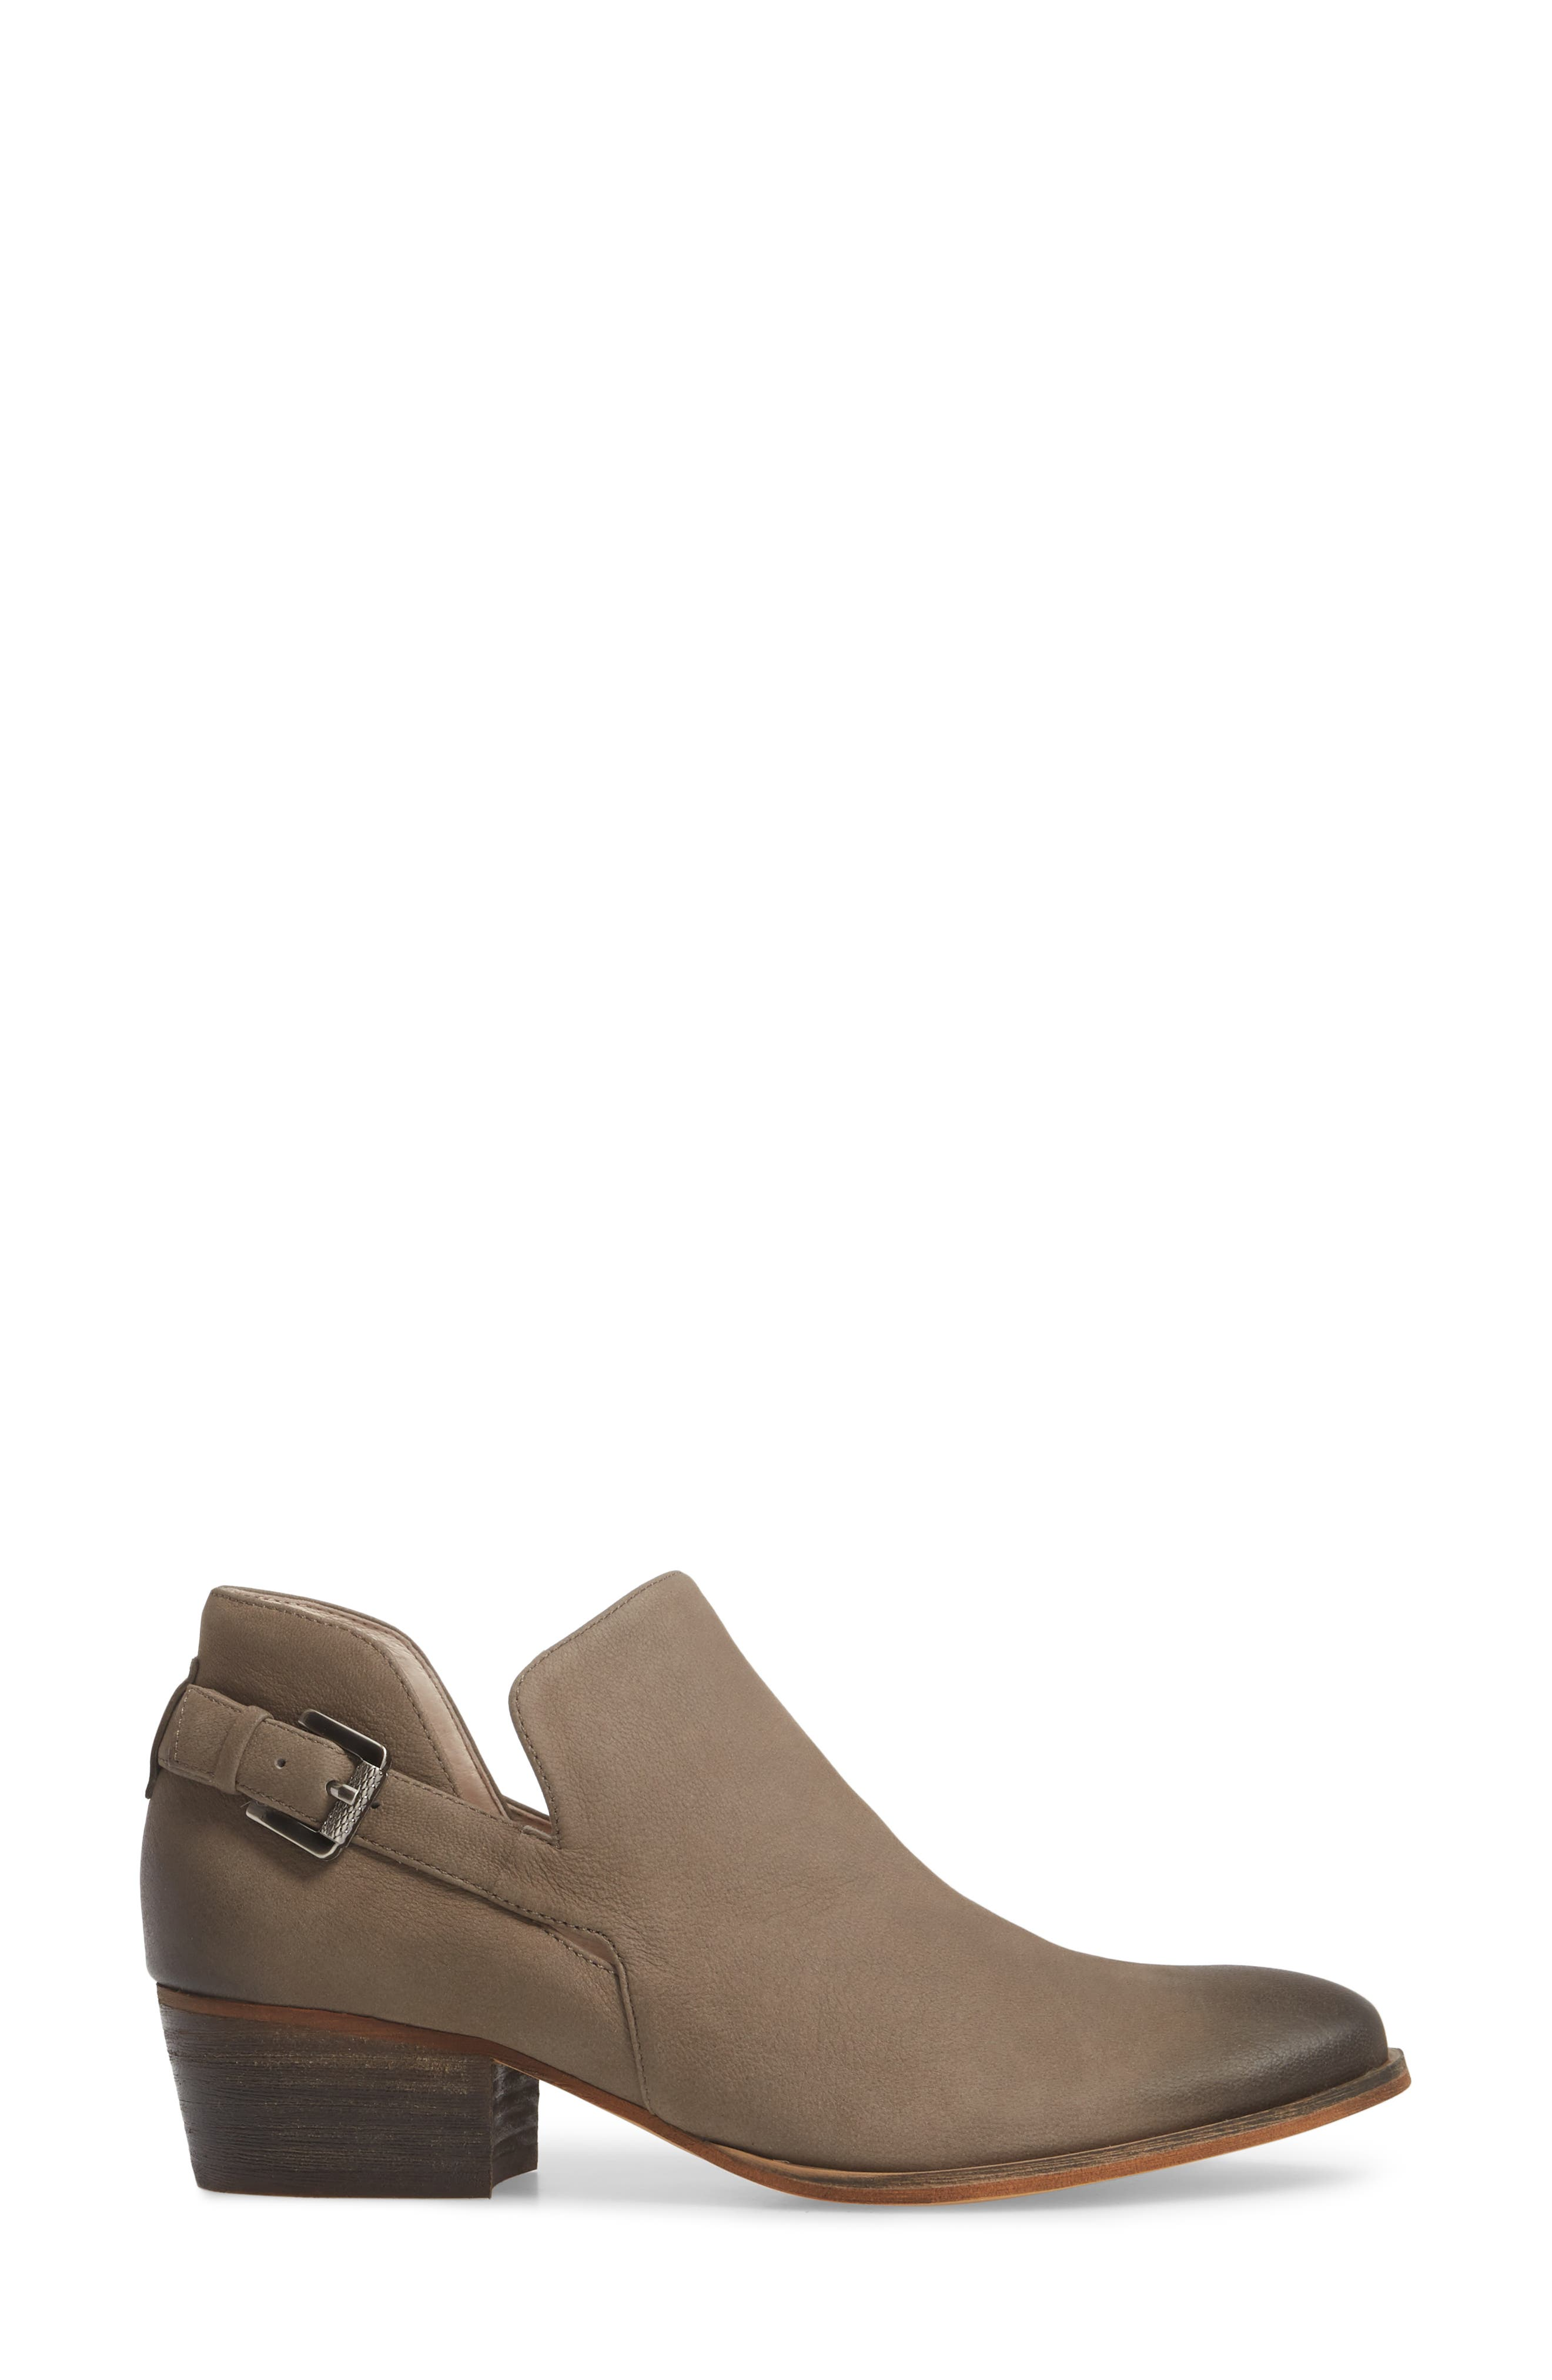 Toby Bootie,                             Alternate thumbnail 3, color,                             Stone Oiled Nubuck